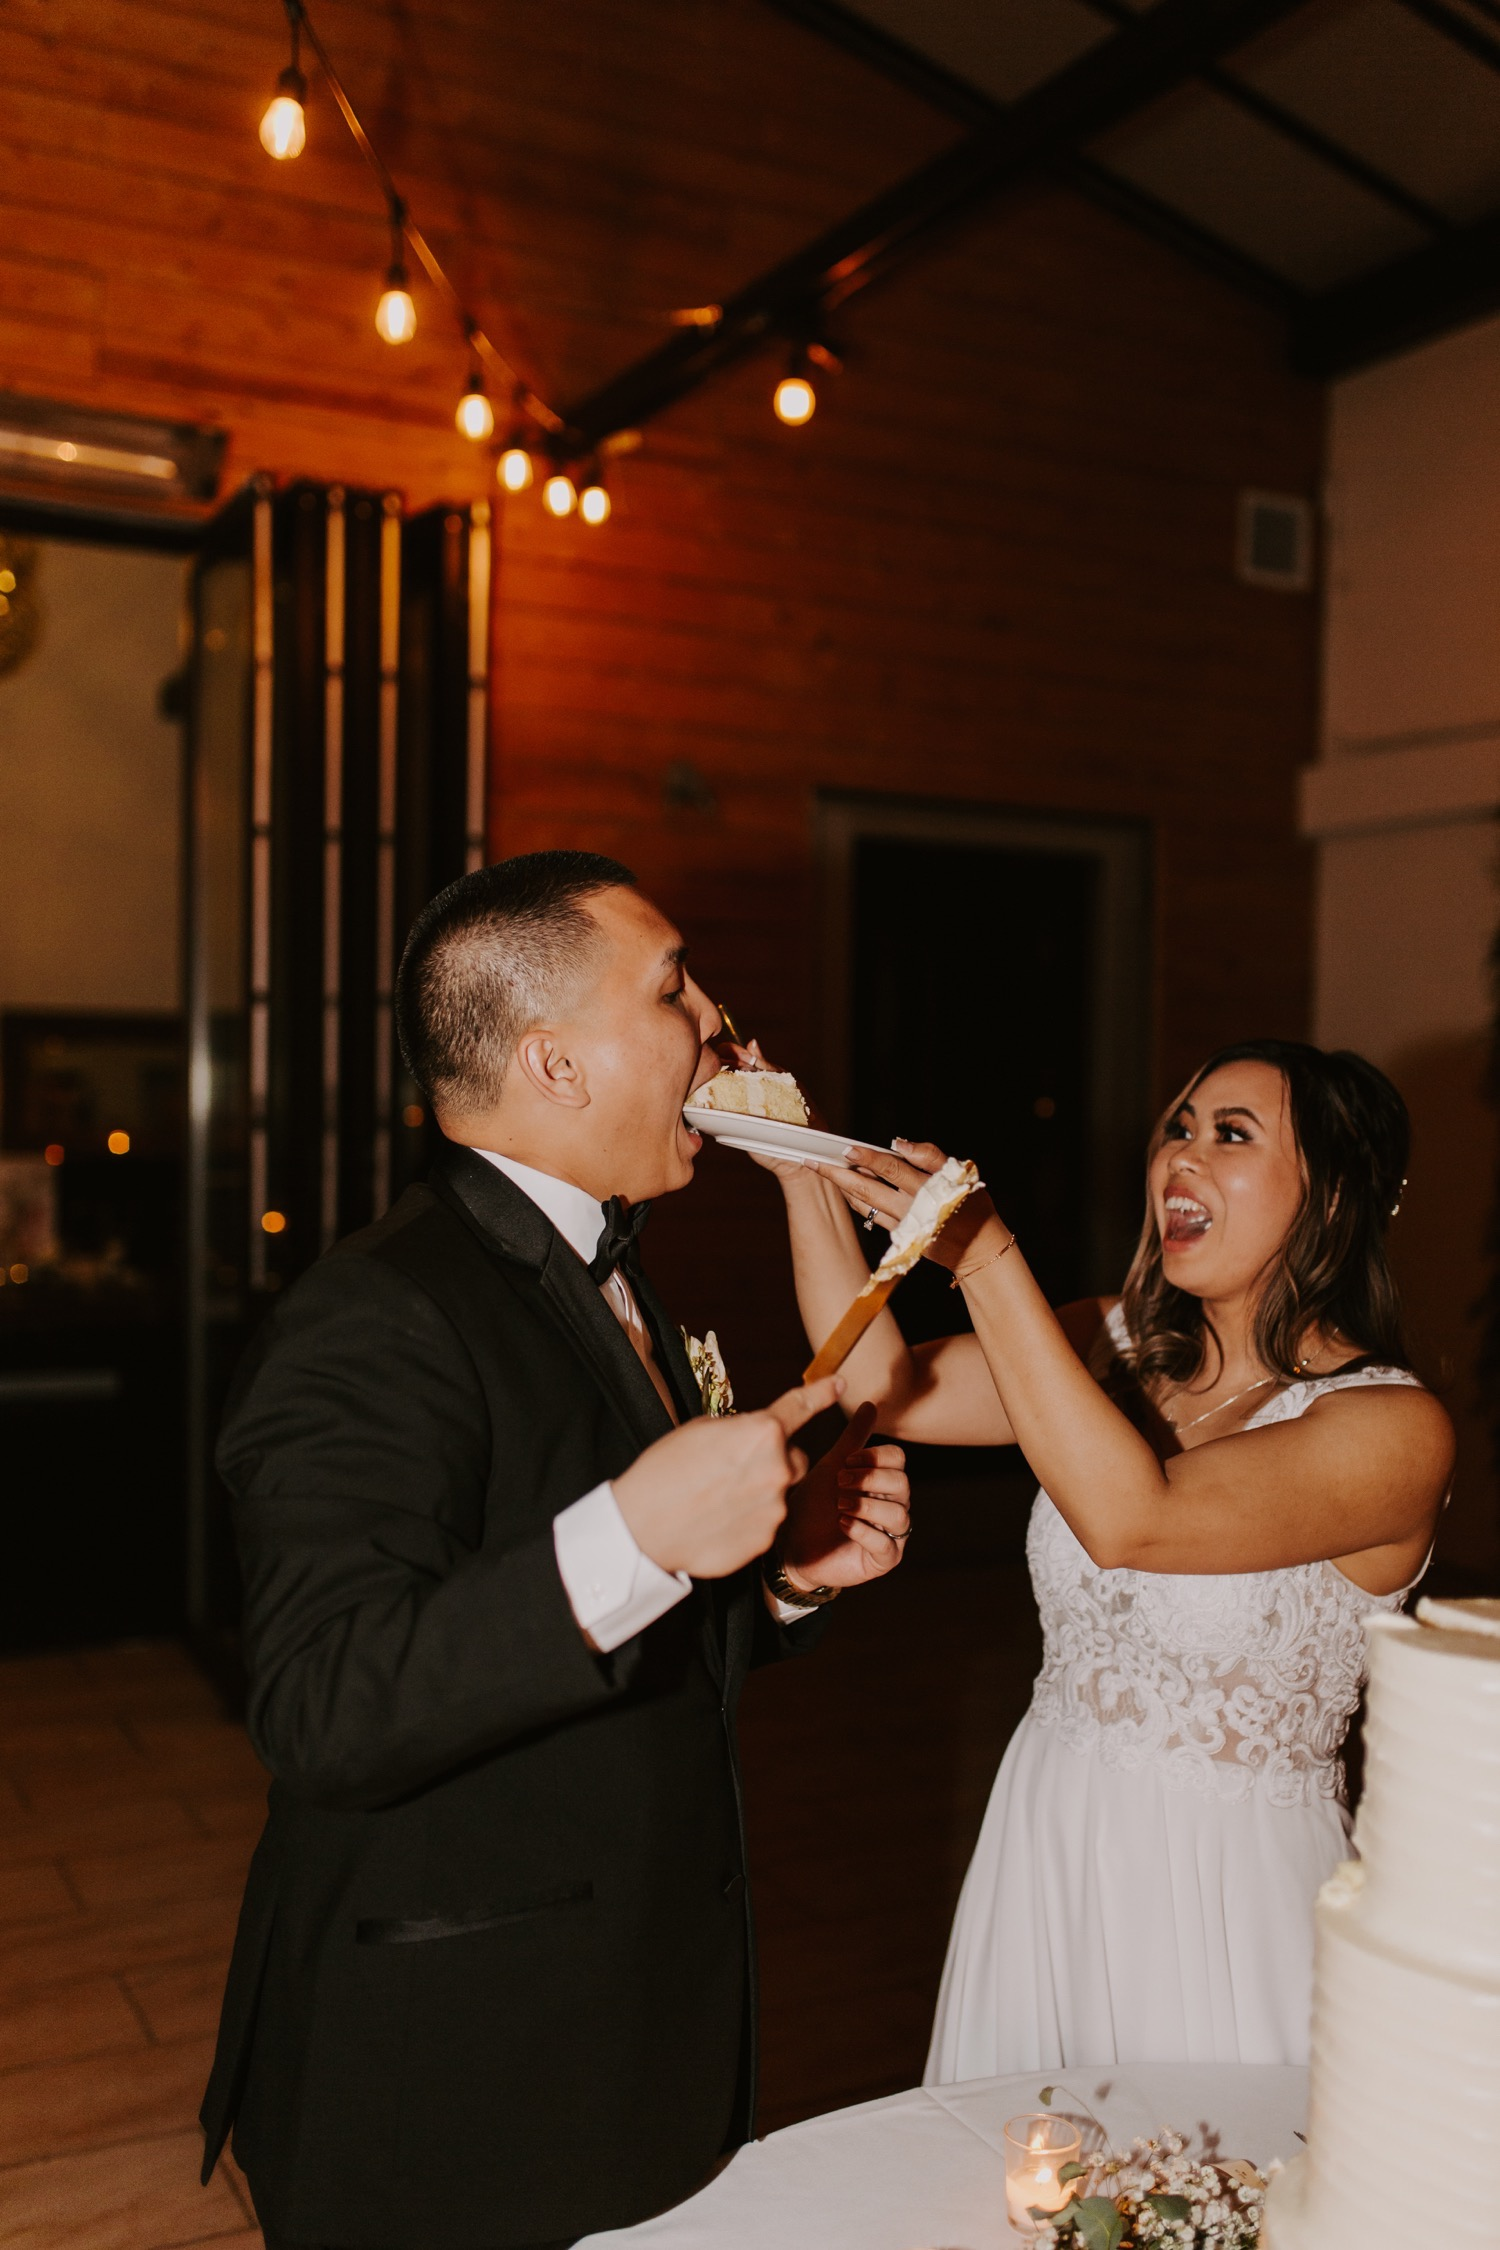 twenty-eight-irvine-wedding-california-traditional-vietnamese-tea-ceremony82.jpg